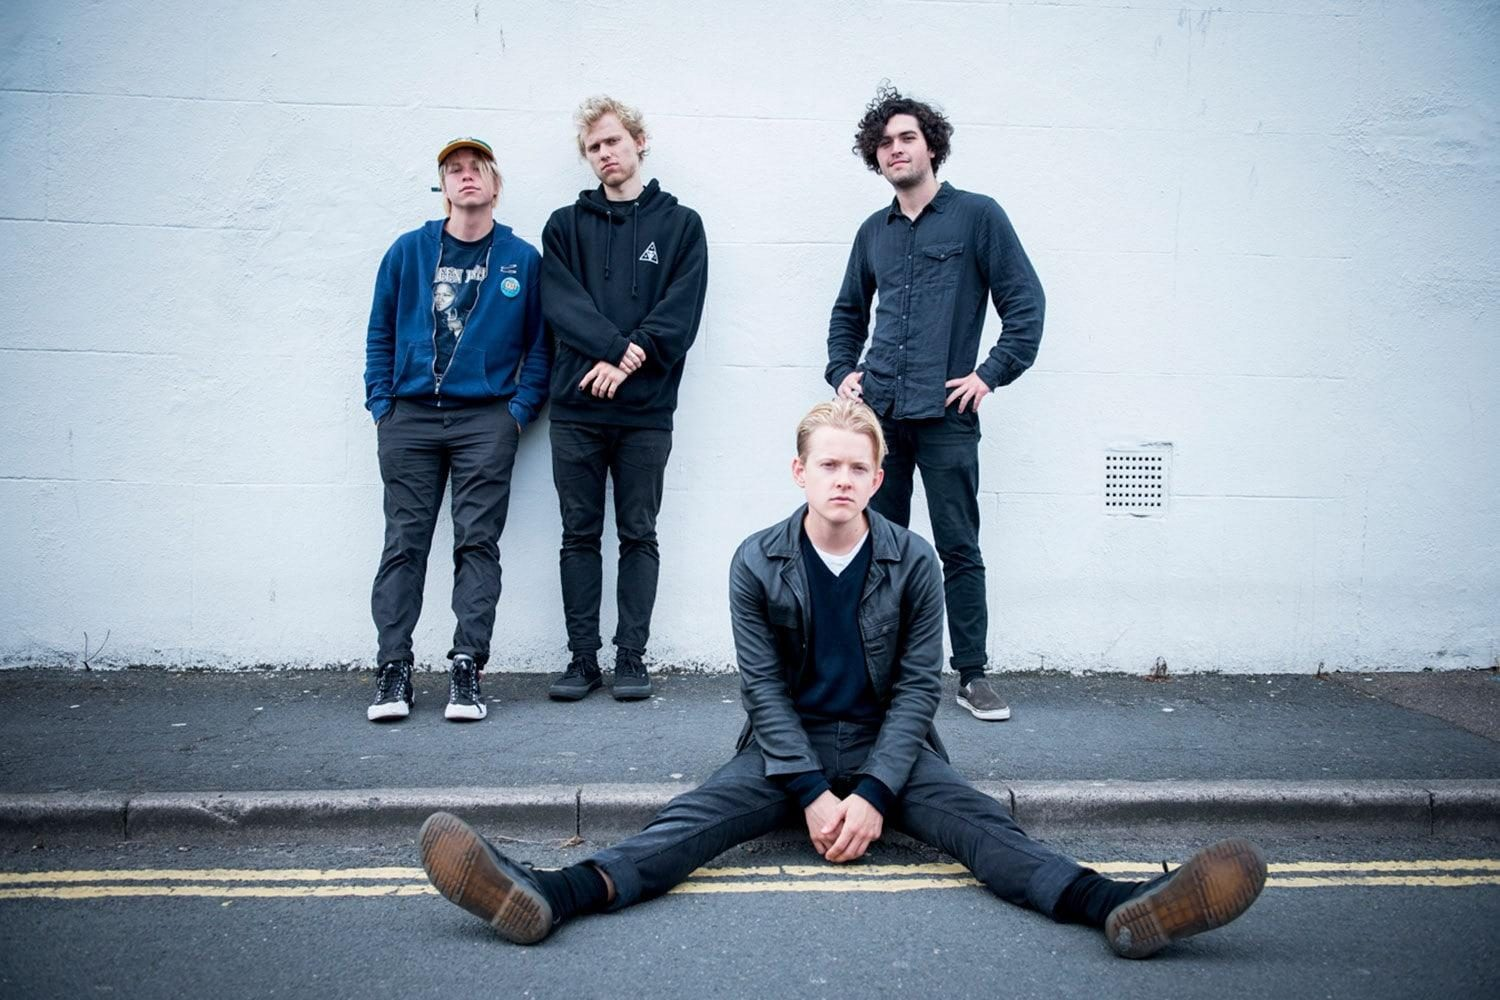 SWMRS are playing a one-off headline show while they're over for Reading & Leeds